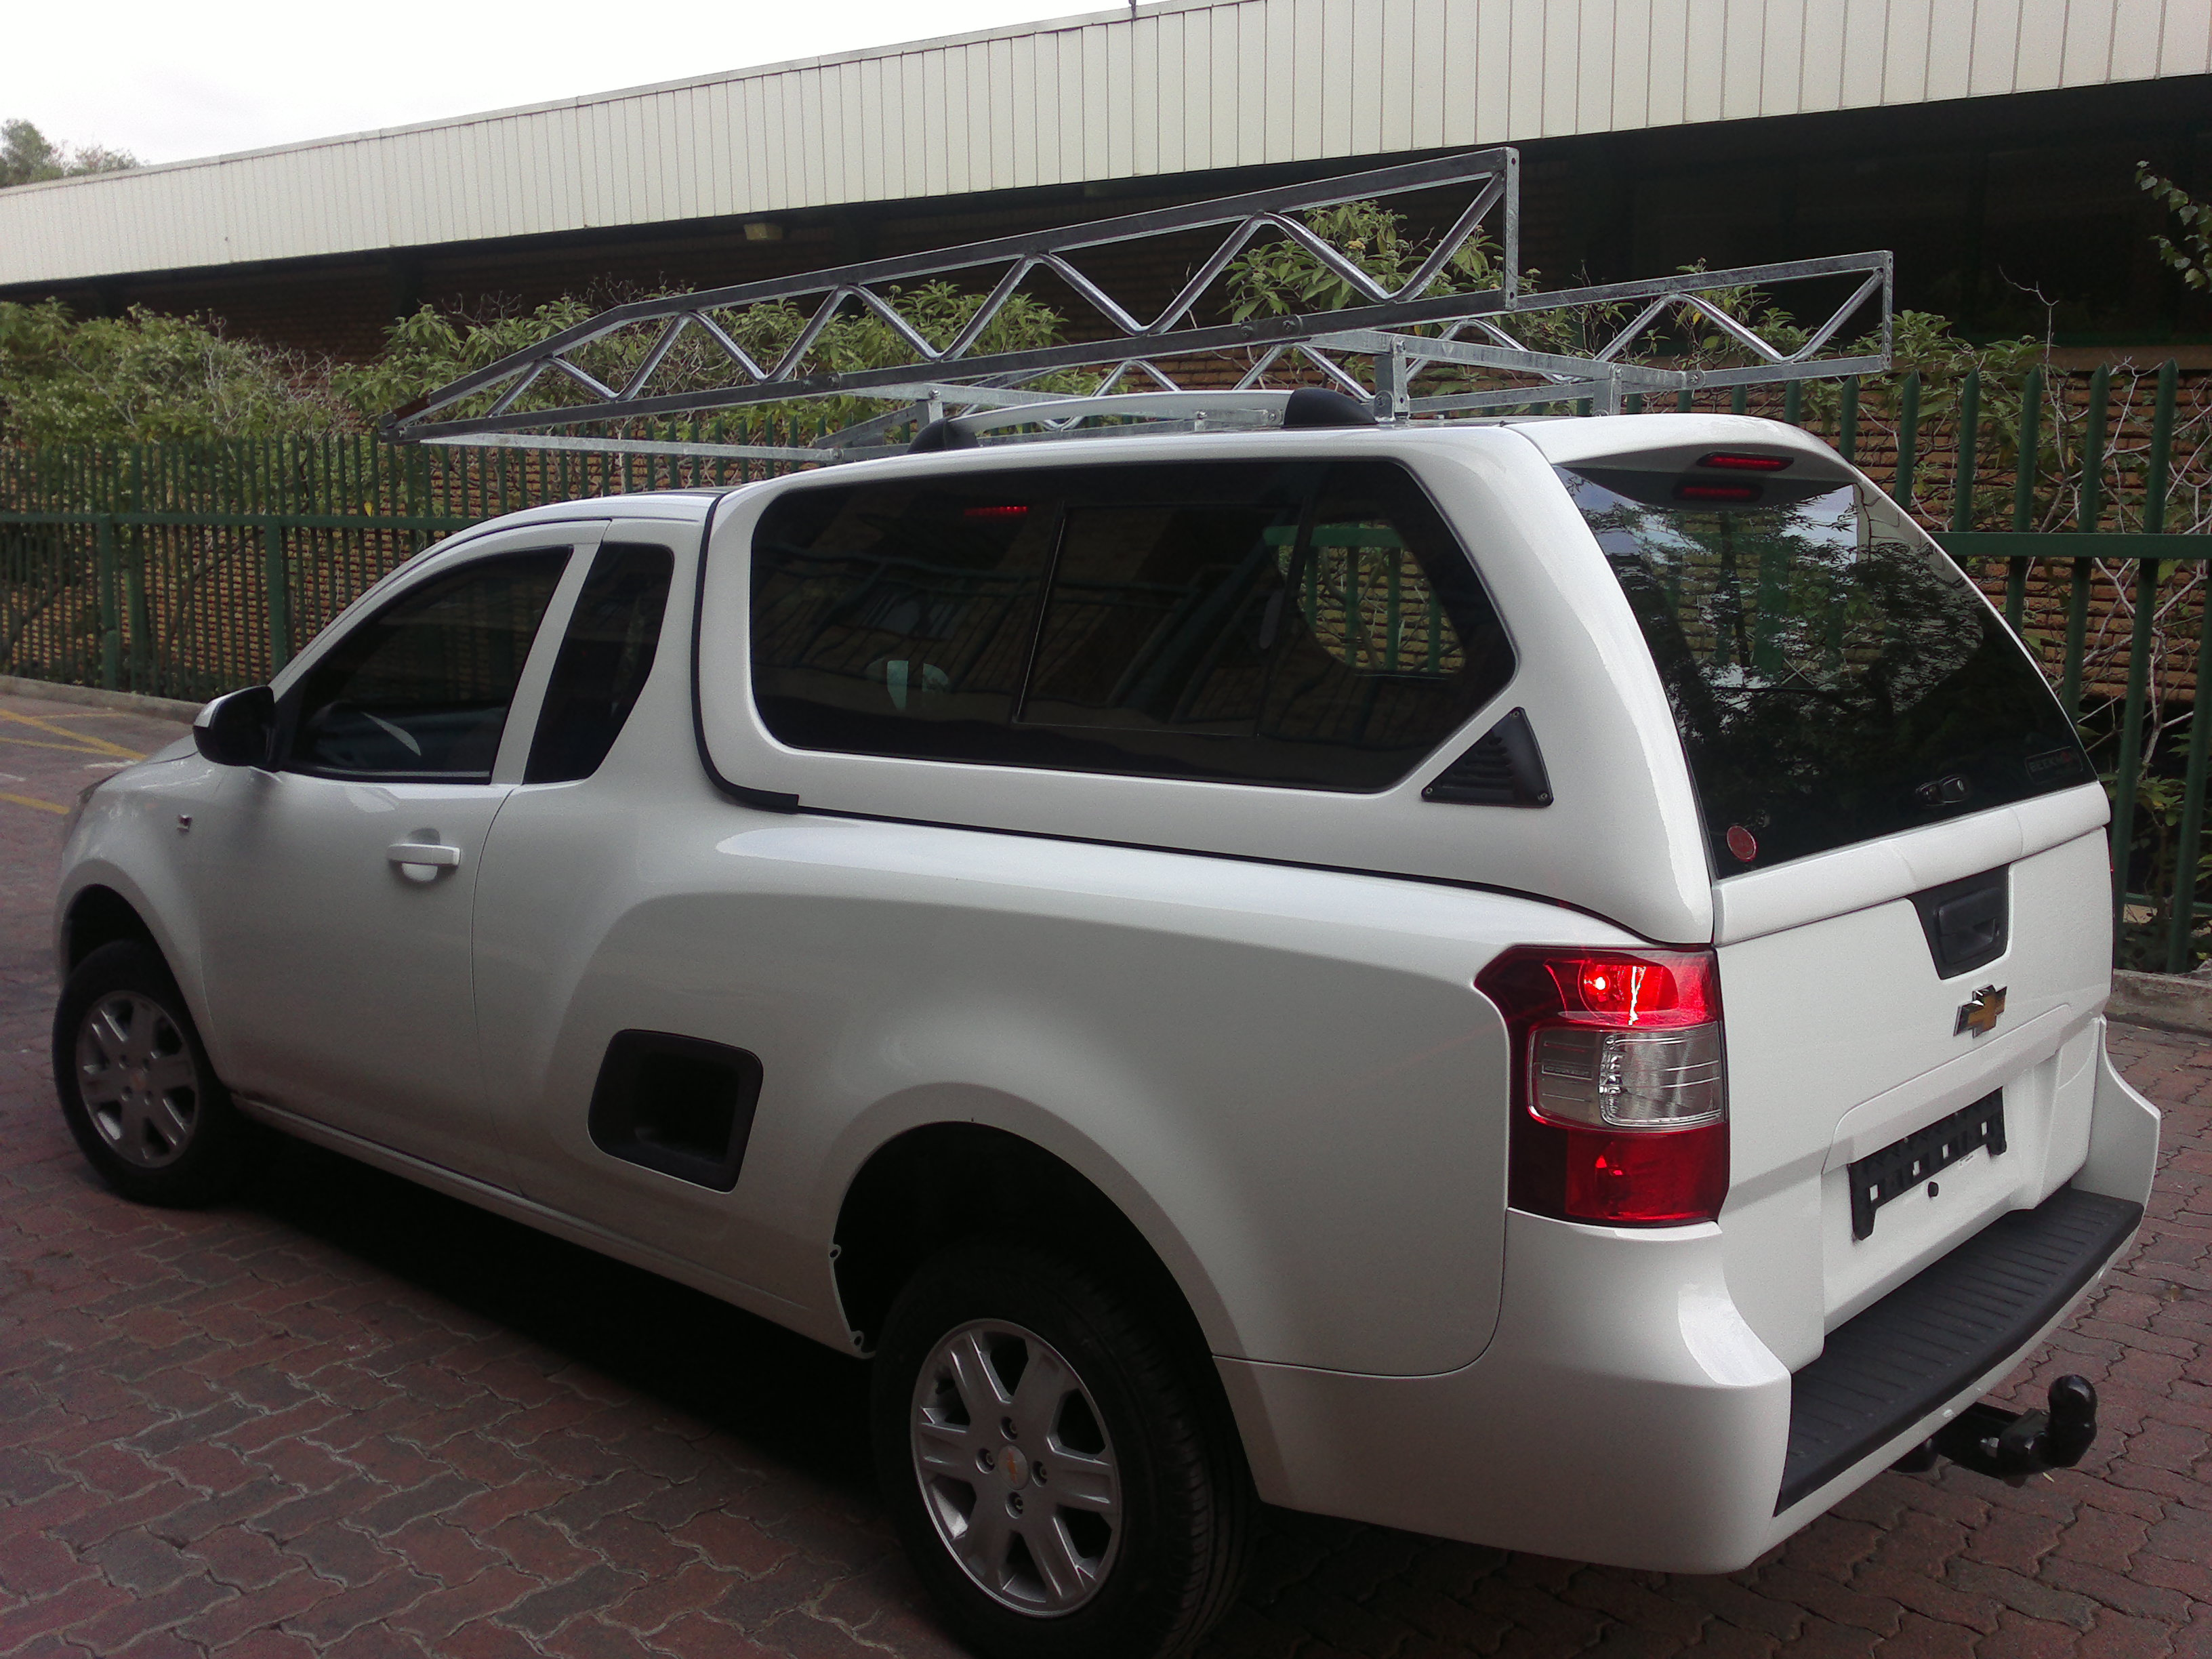 CHEV CANOPY RACK & Canopy Racks | Rails | Roof Racks For Sale memphite.com